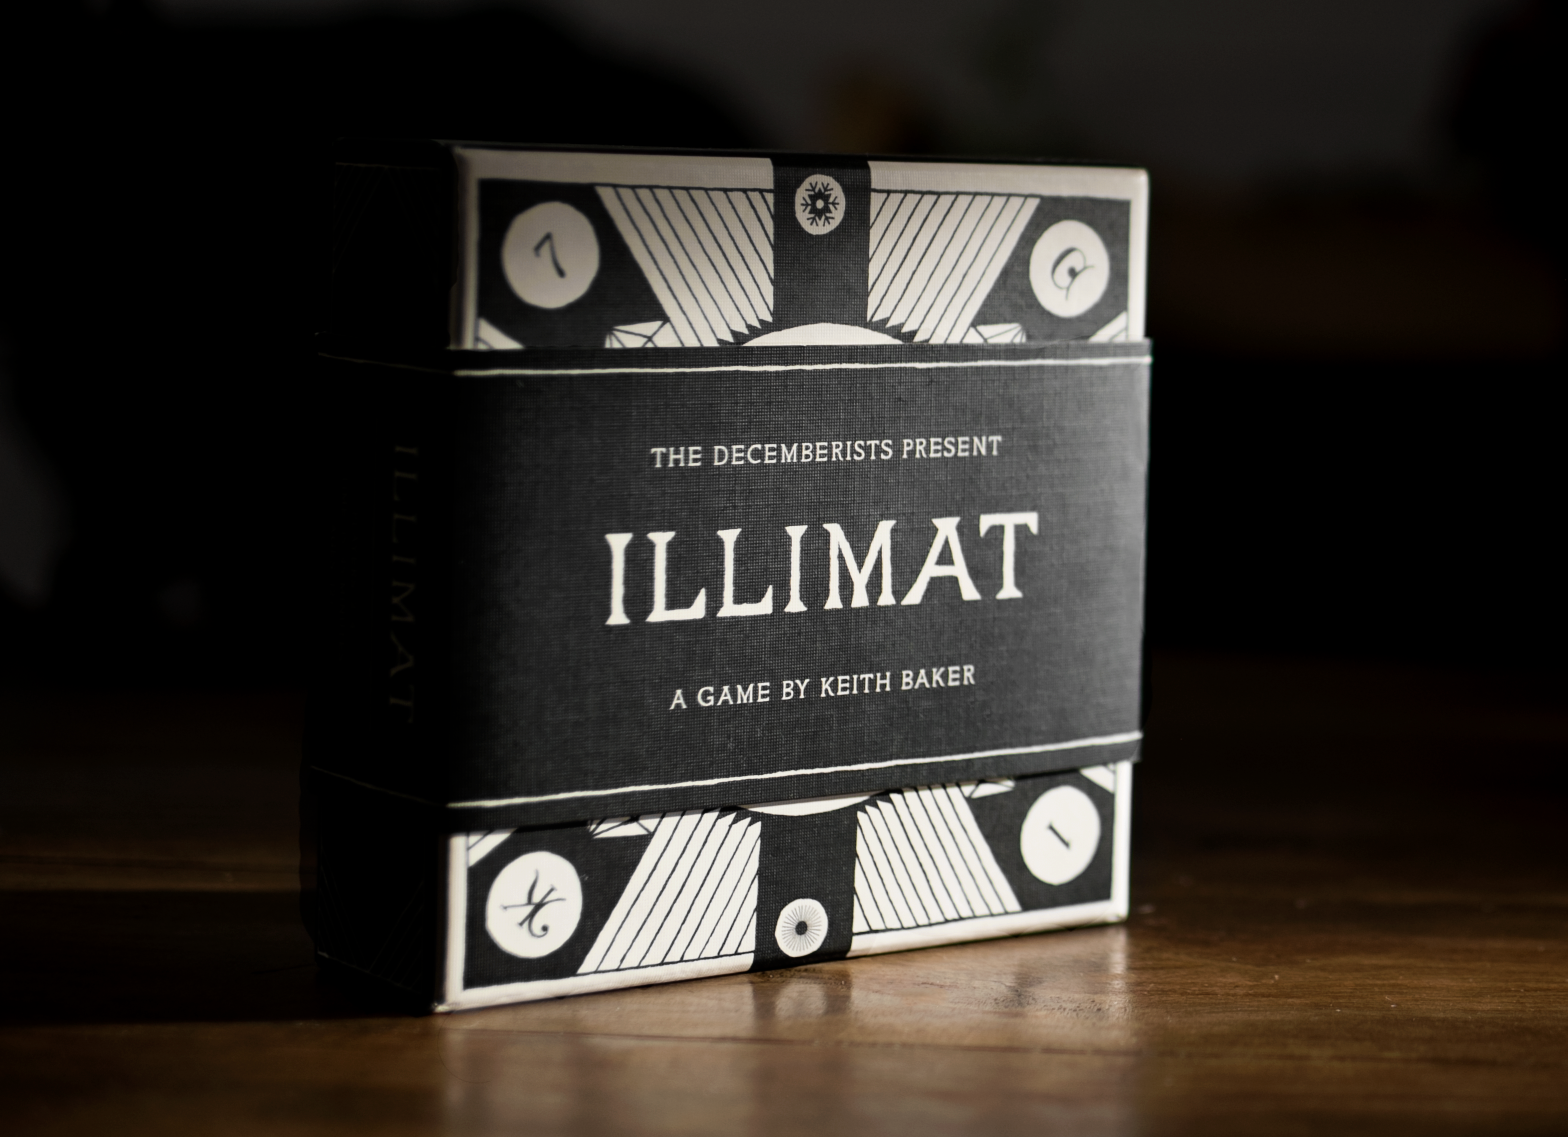 Illimat_gamebox_mobile.png